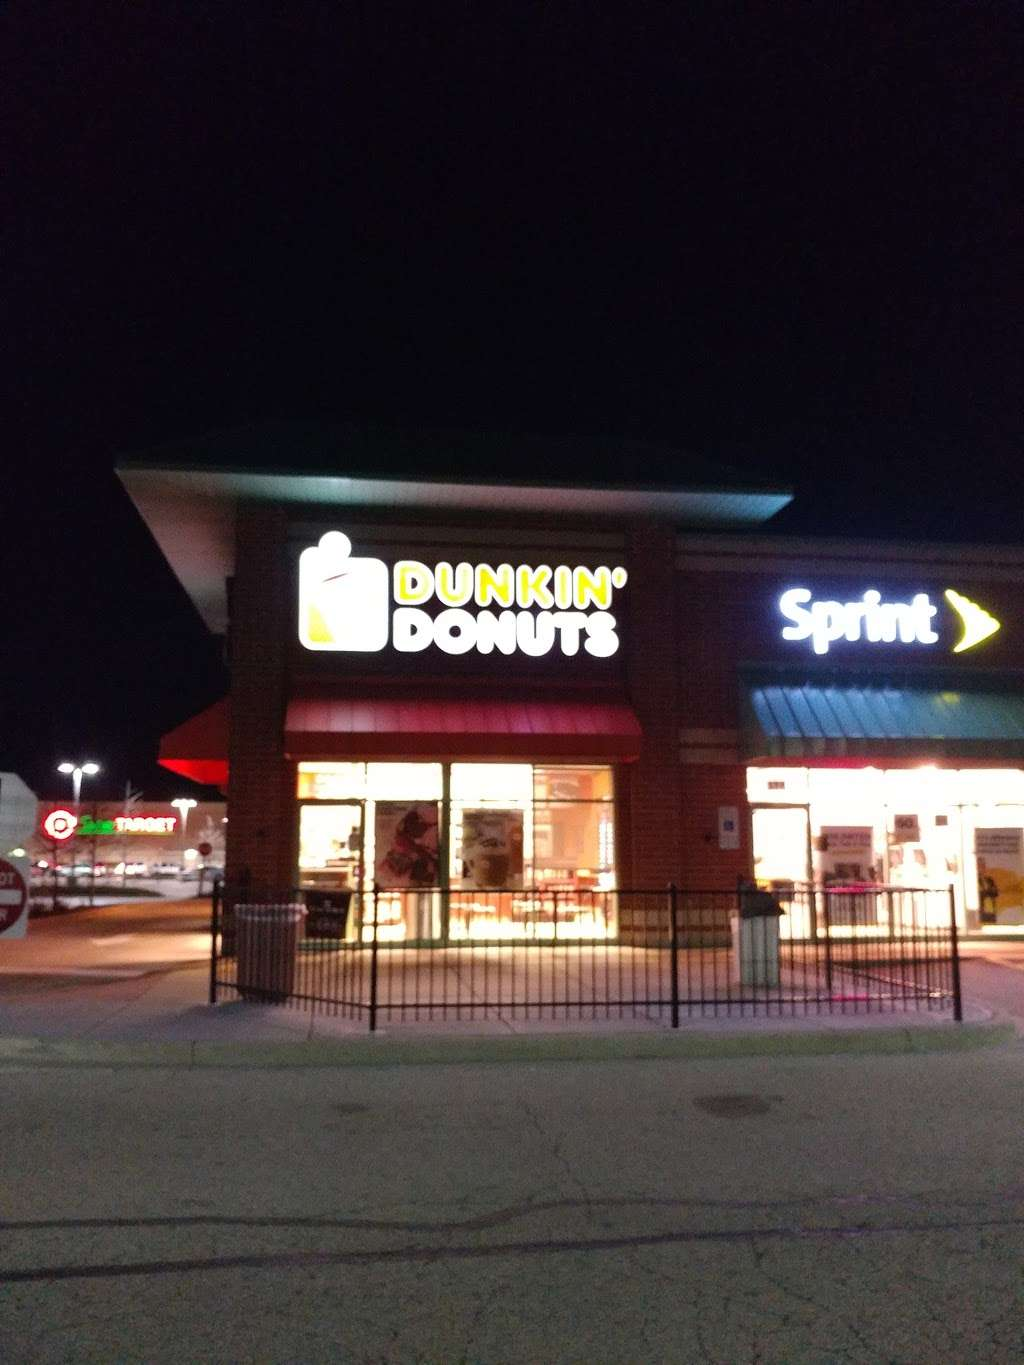 Dunkin Donuts - cafe    Photo 3 of 7   Address: 514 Randall Rd, South Elgin, IL 60177, USA   Phone: (847) 214-3602